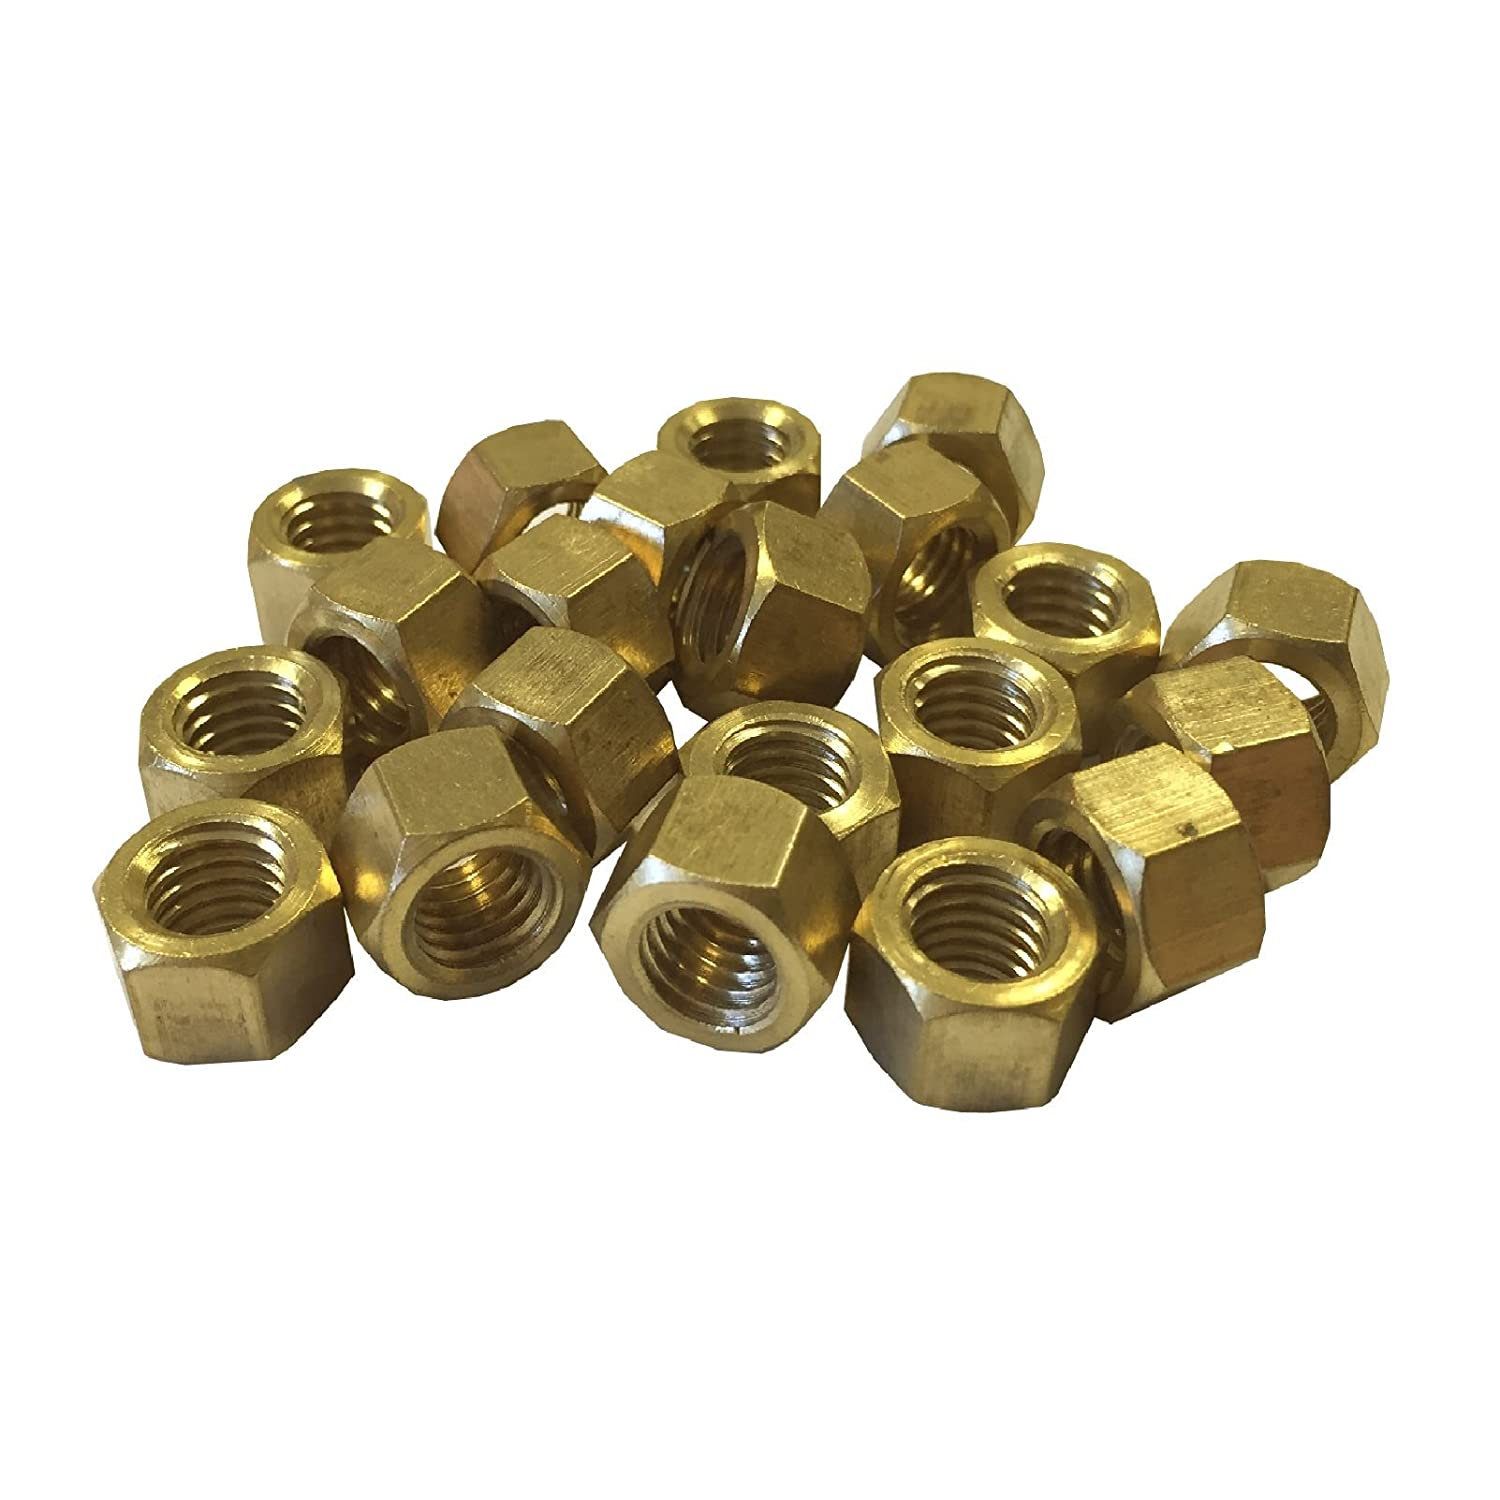 16 x Brass Exhaust Imperial Manifold Nuts 1/4' UNF High Temperature Homesmart